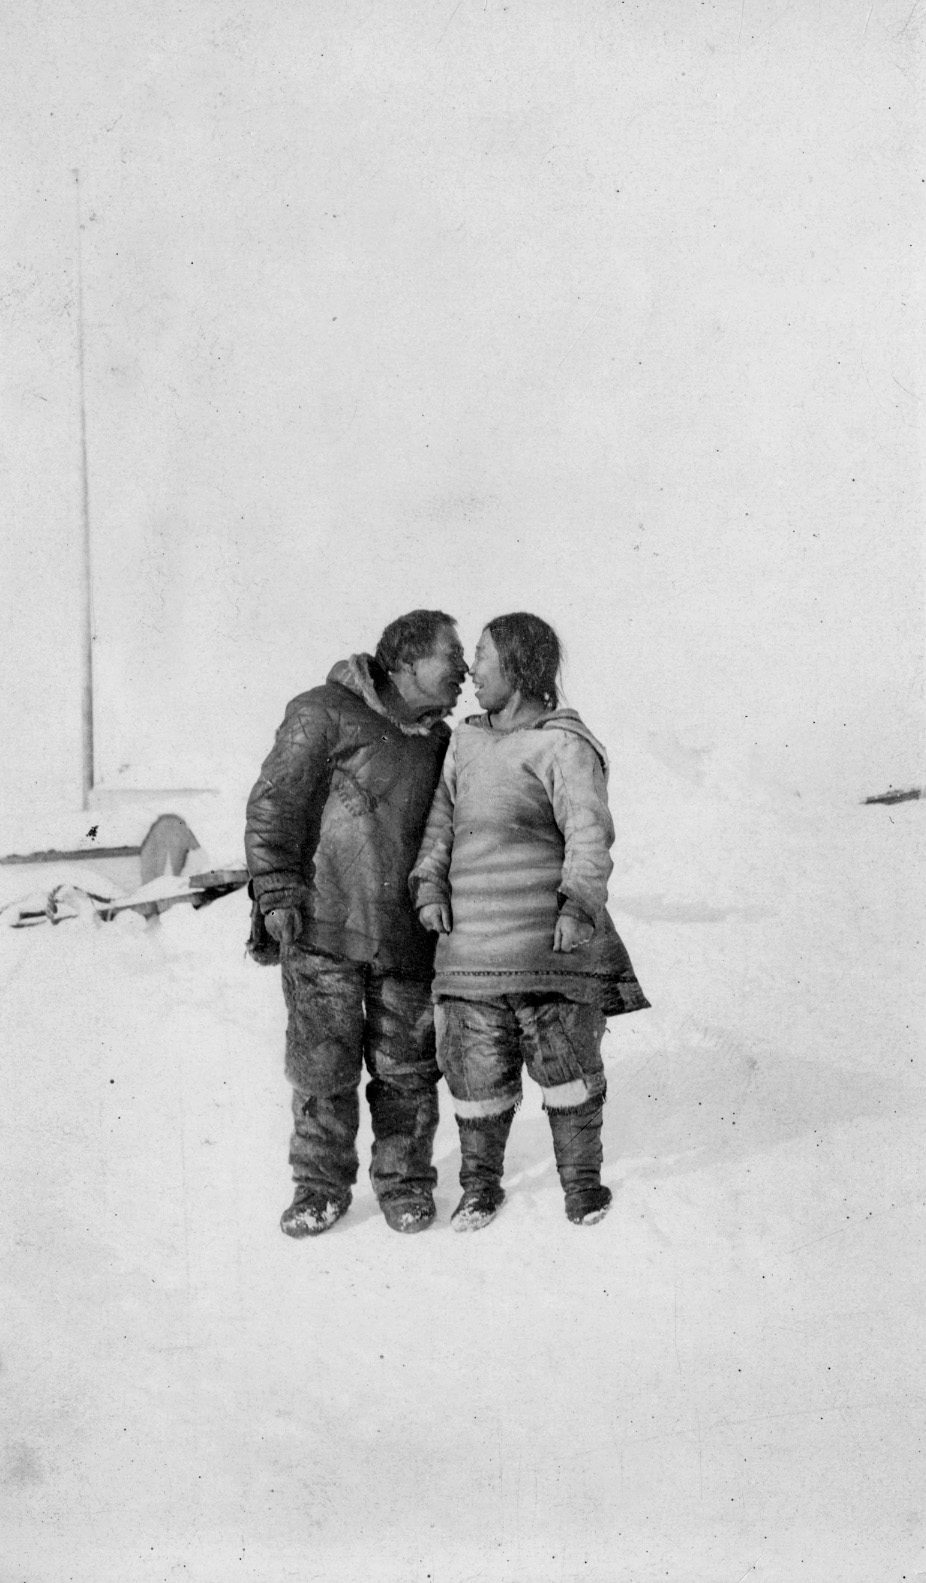 Hudson's Bay Company archive photo, Canadian Arctic